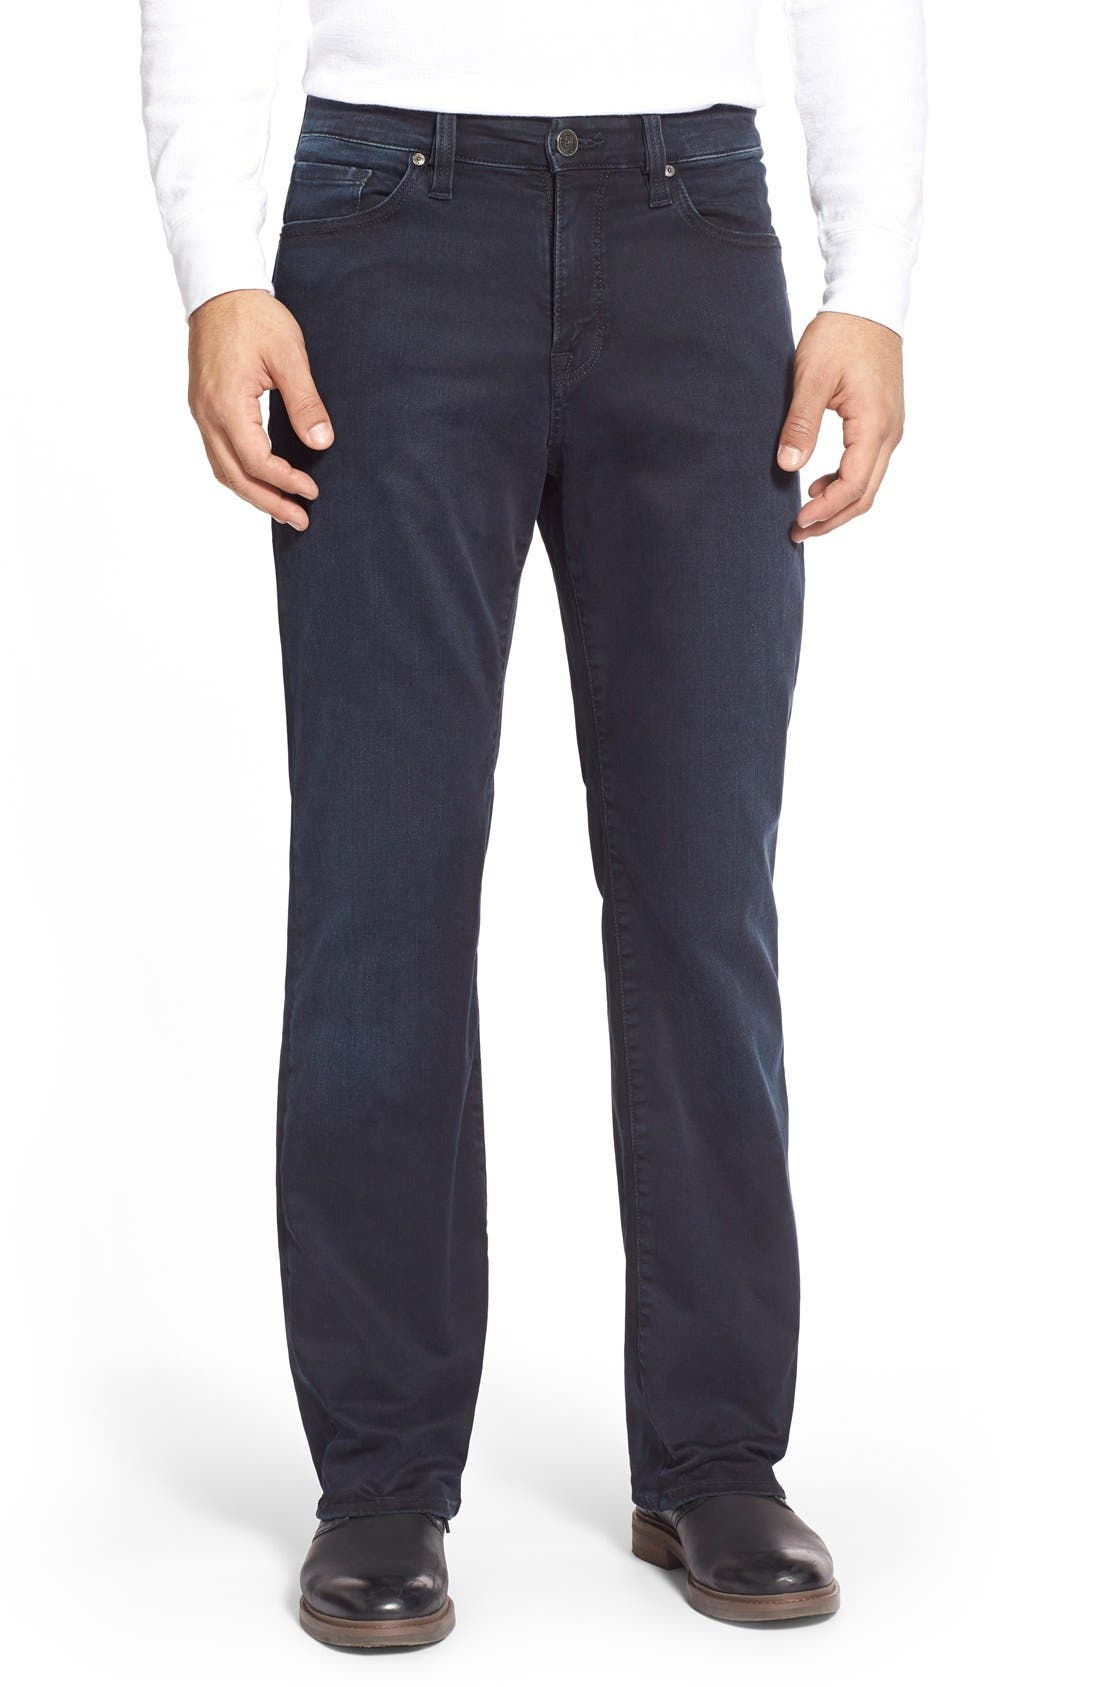 'Charisma' Relaxed Fit Jeans,                         Main,                         color, Deep Reform